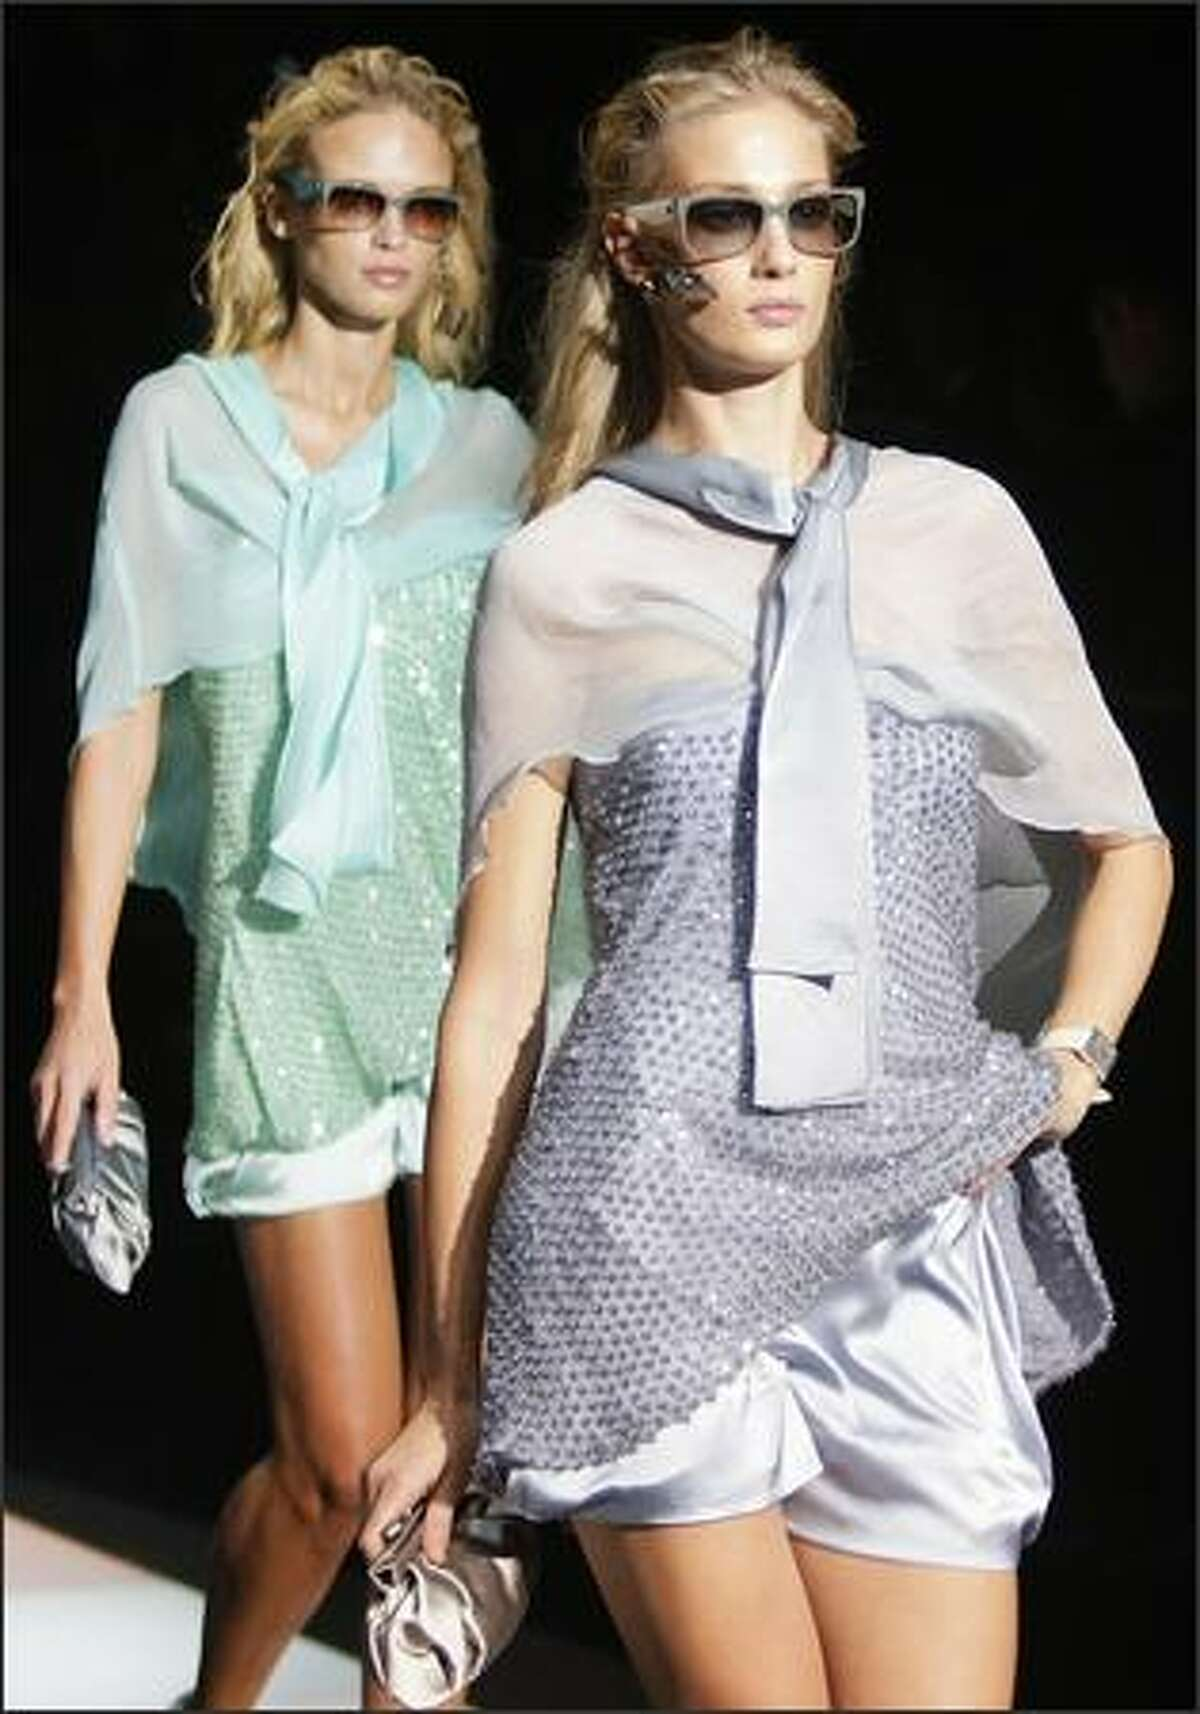 Models present creations by Italian designer Giorgio Armani for Emporio Armani during the Spring/Summer 2008 collections of the Milan ready-to-wear fashion shows.